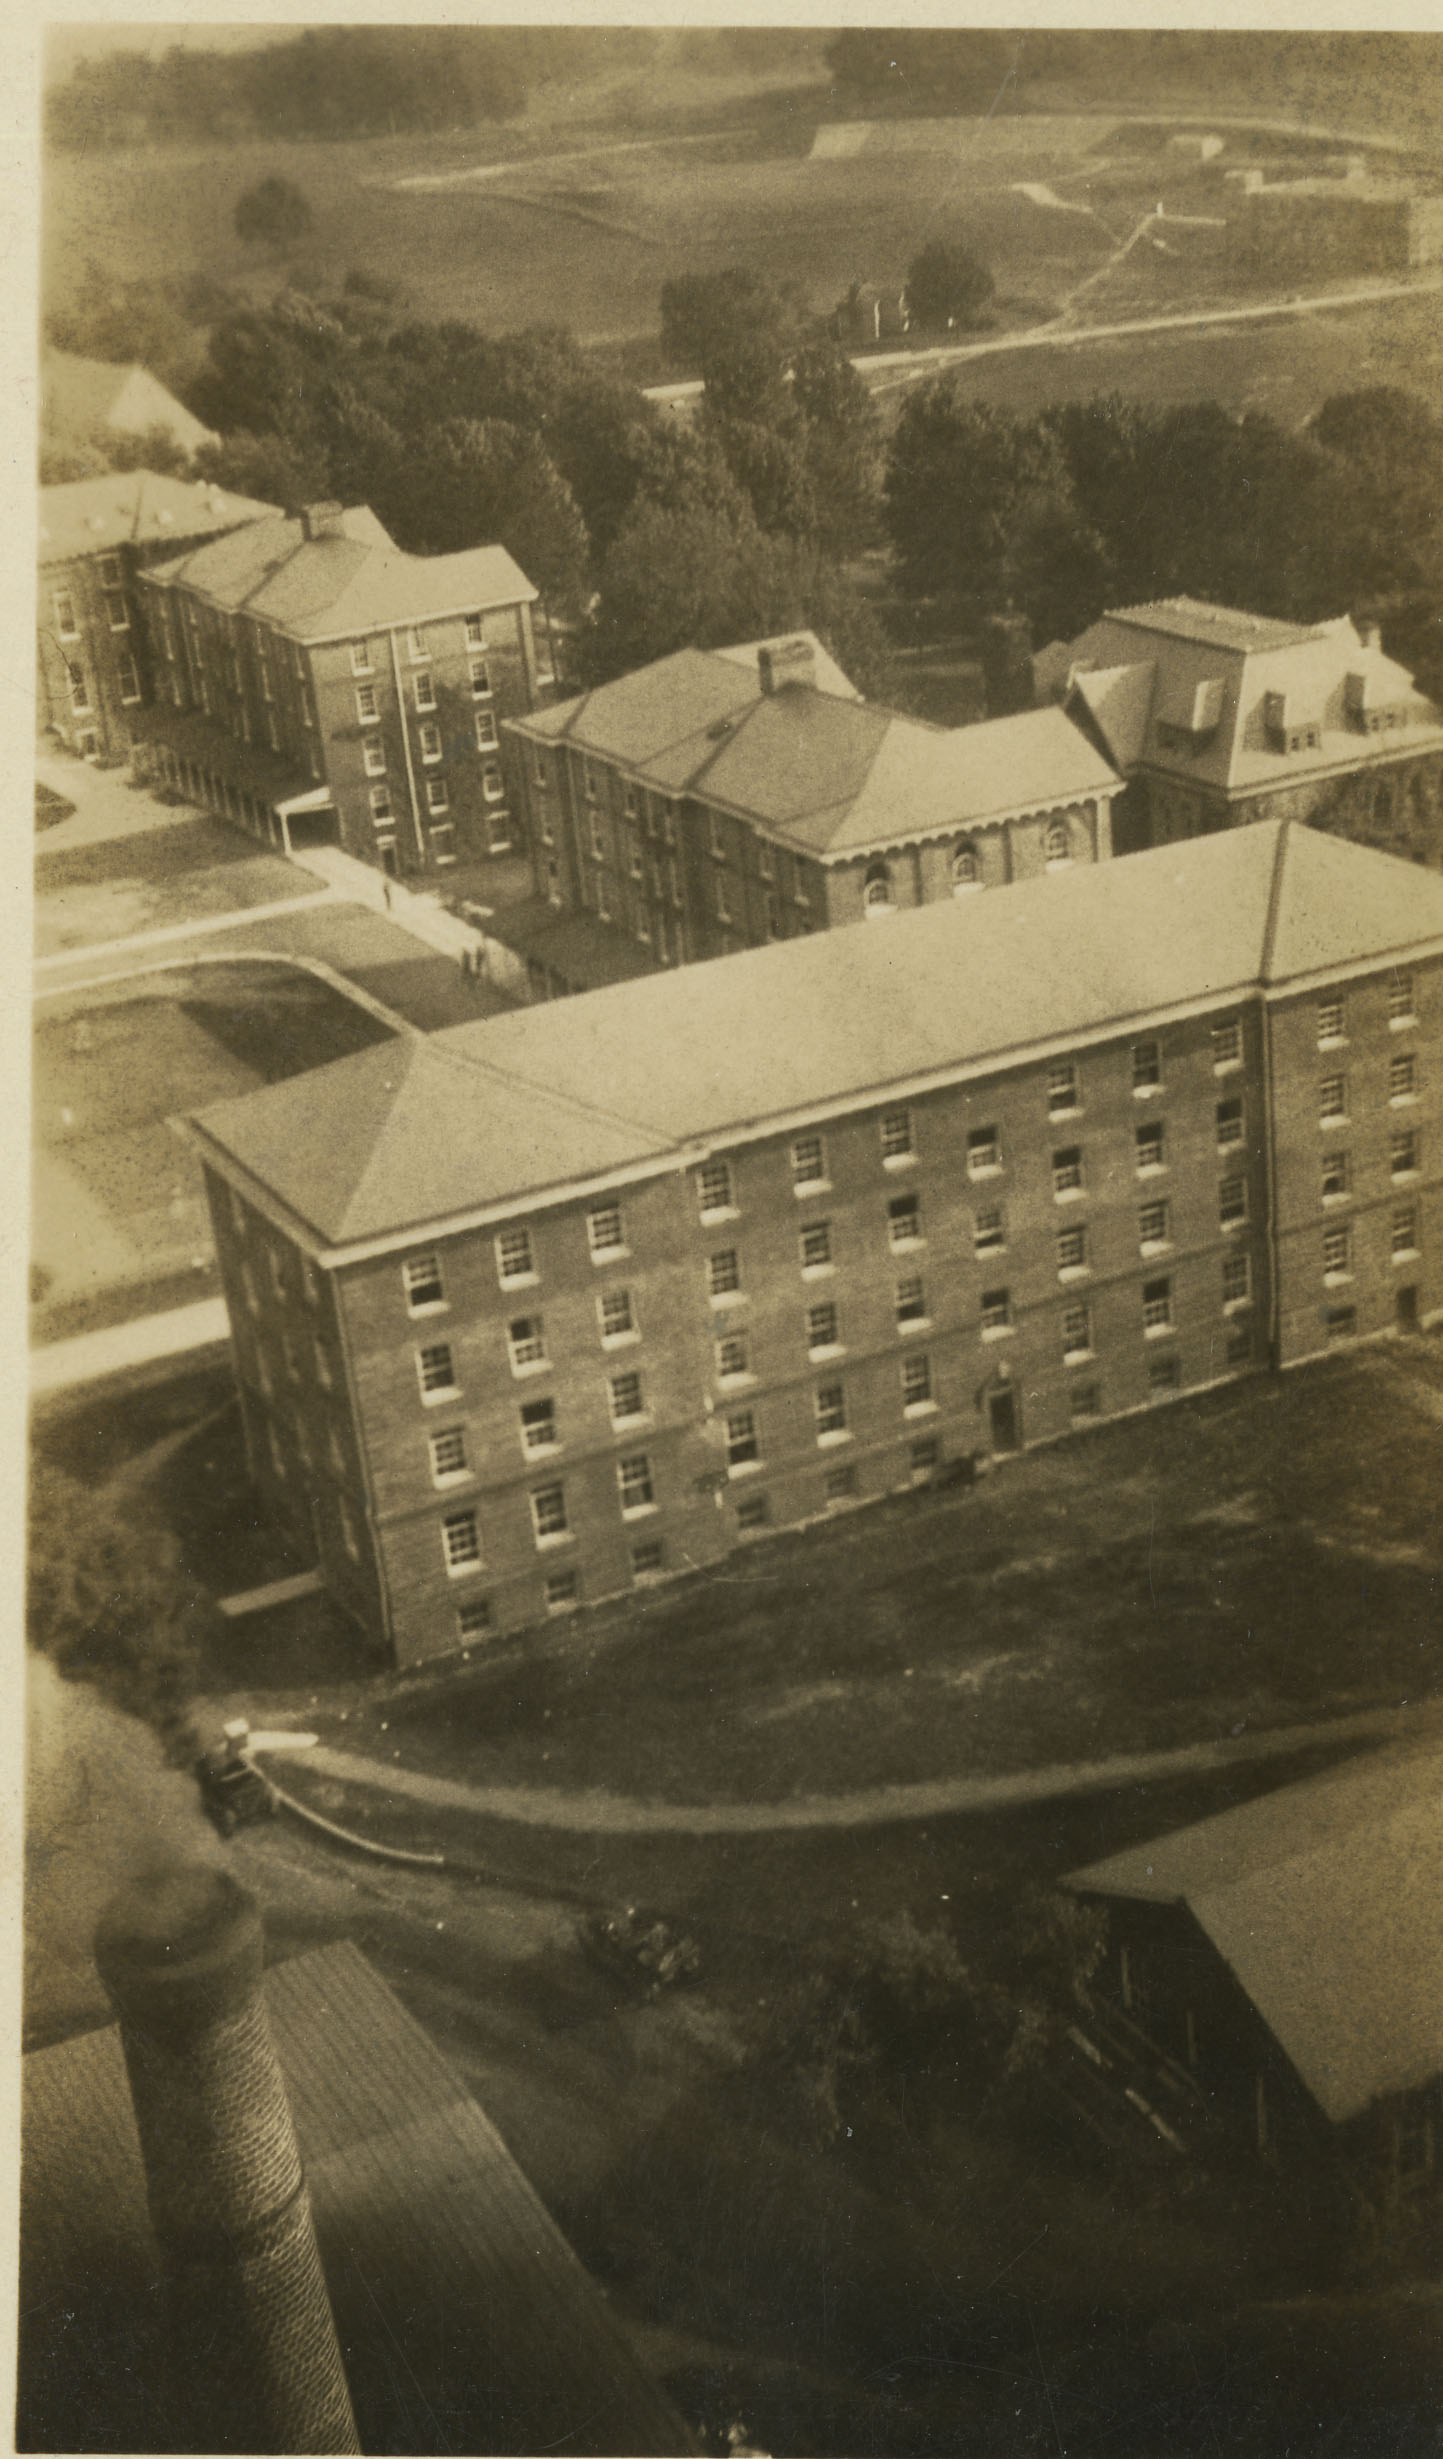 Undated, apparently taken from the smokestack. Barracks No. 6 is at the center, with No. 5 just behind it. To the right of the No. 5 is the old YMCA building.